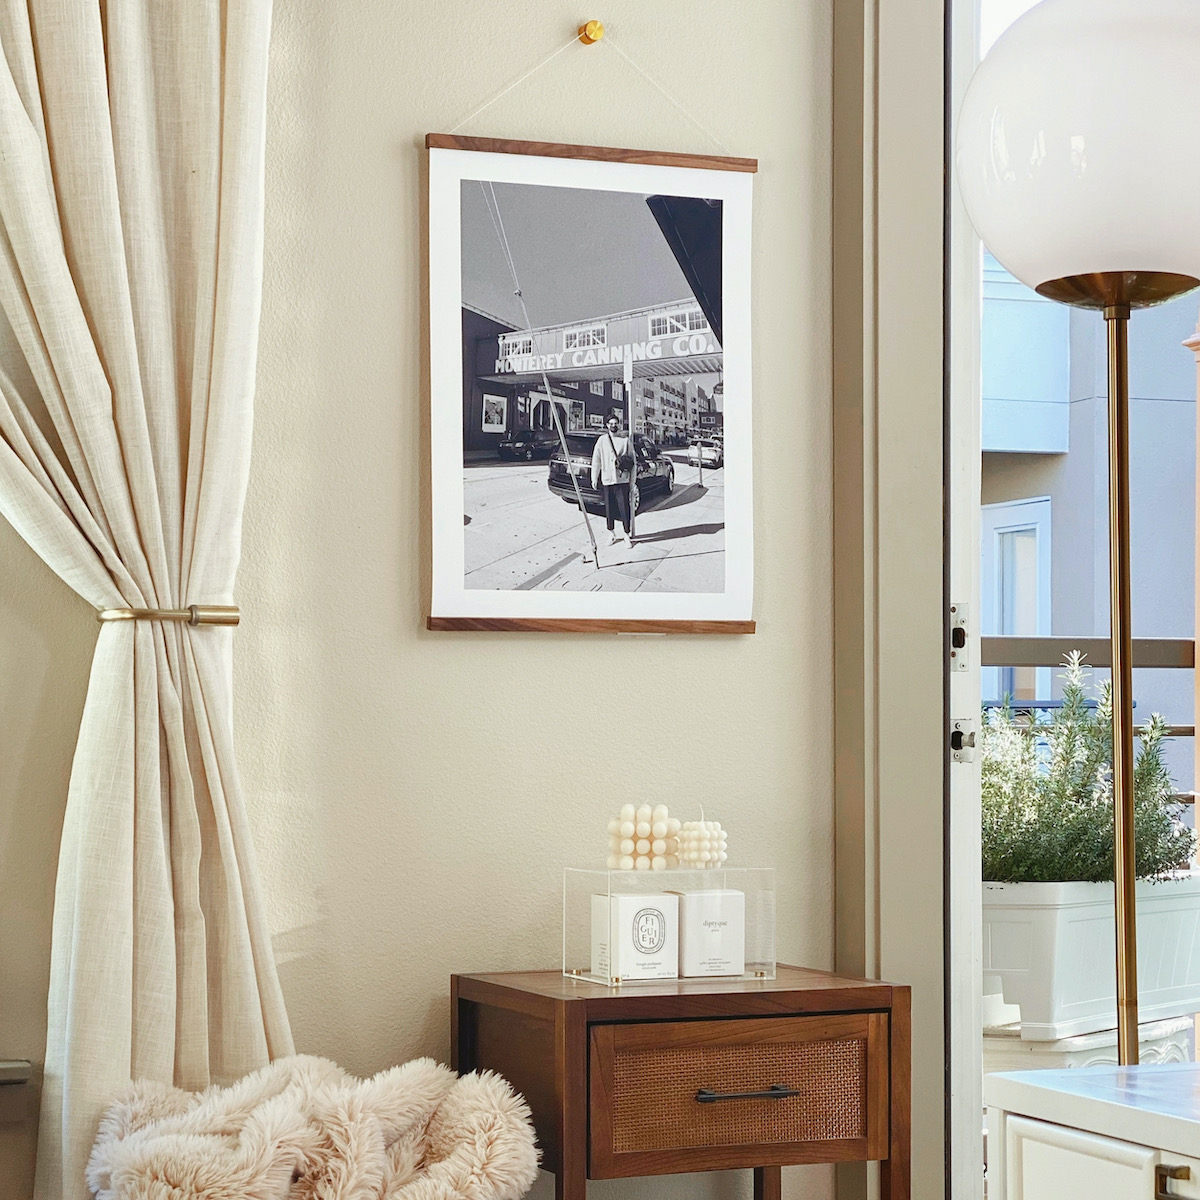 Large Artifact Uprising print featuring photo of man in front of old canning company hanging from print hanger in corner with nightstand